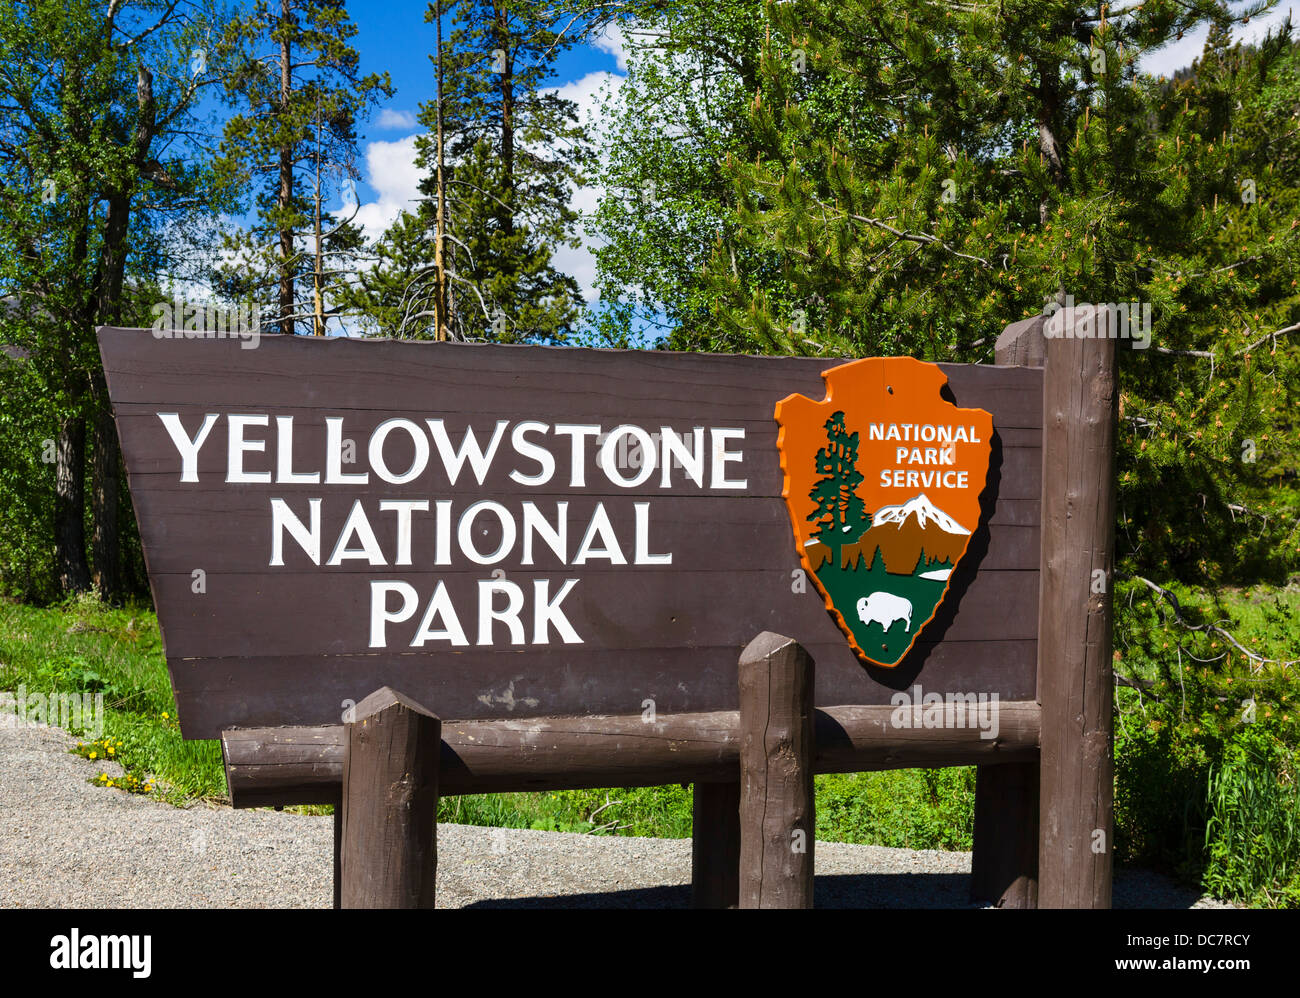 Entrance to Yellowstone National Park, Wyoming, USA - Stock Image